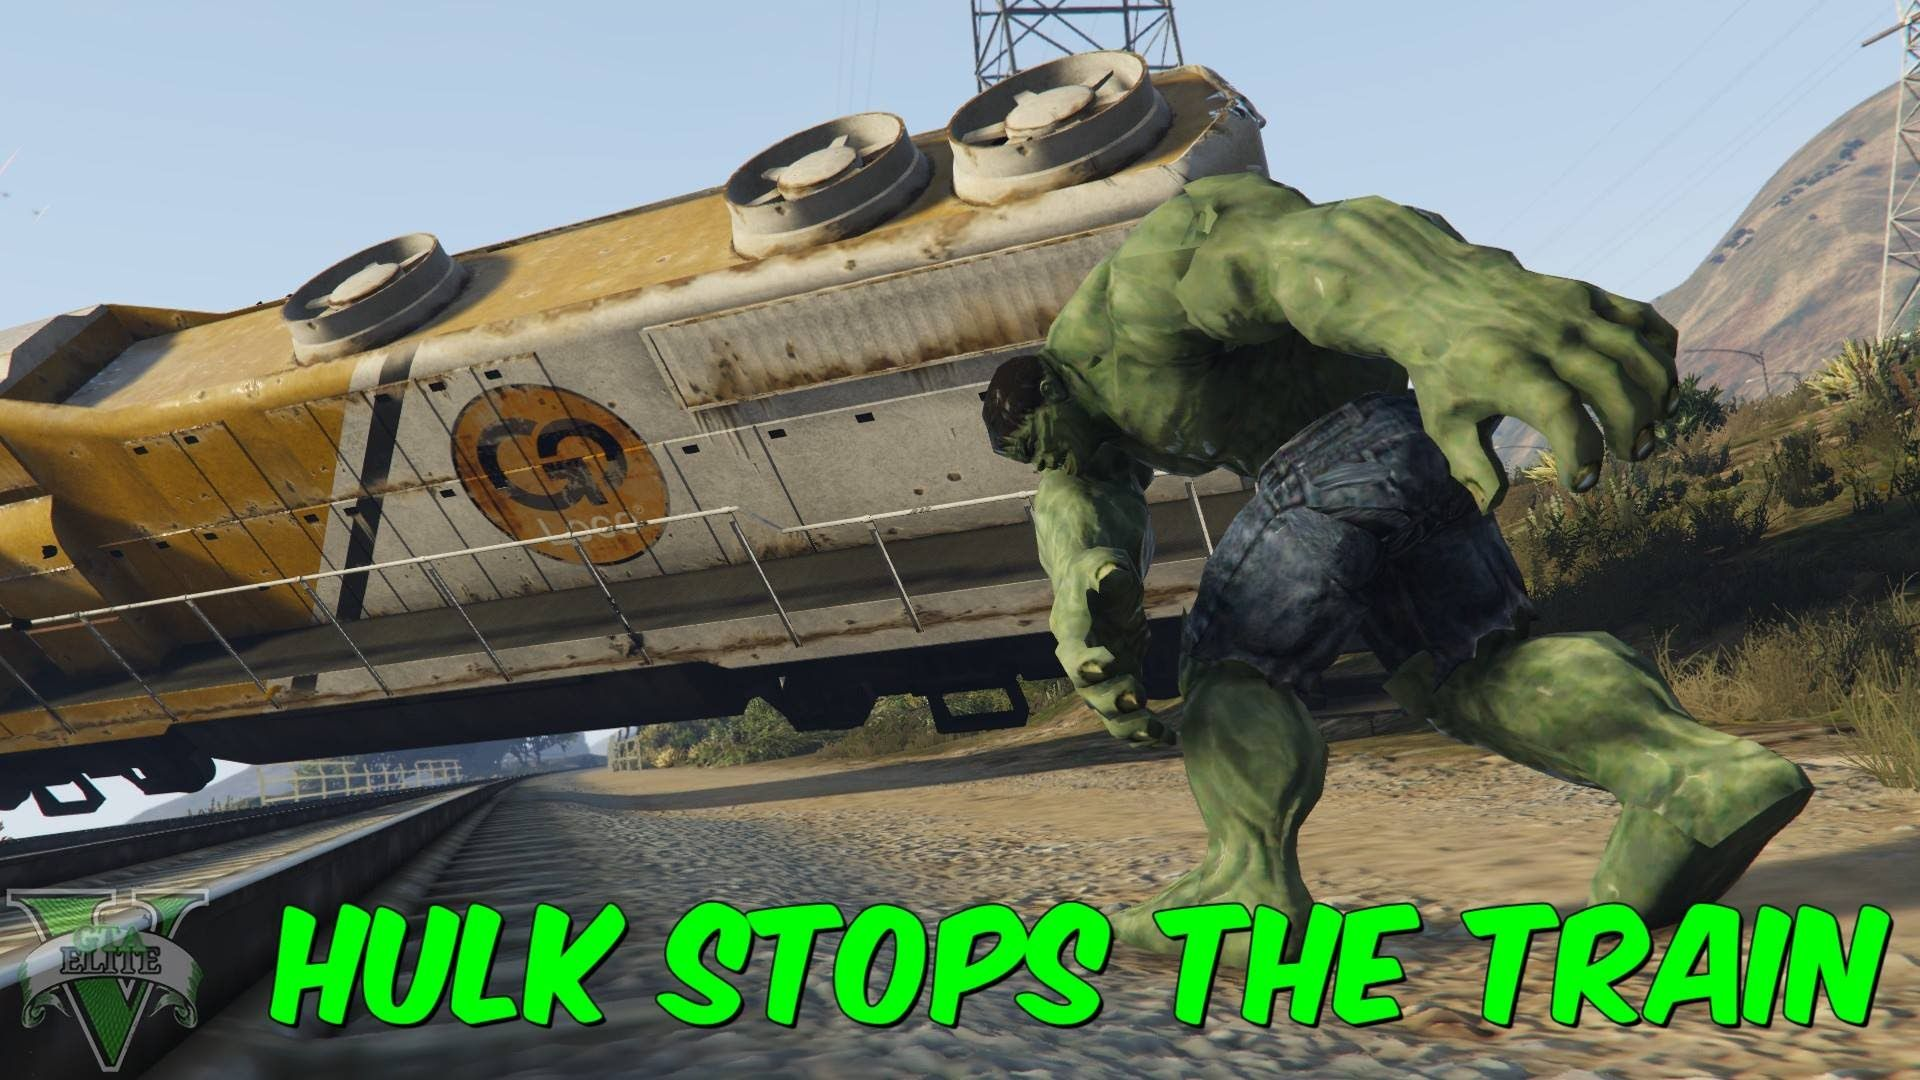 Hulk Stops the Train  GTA V PC Mod (Gameplay + Download